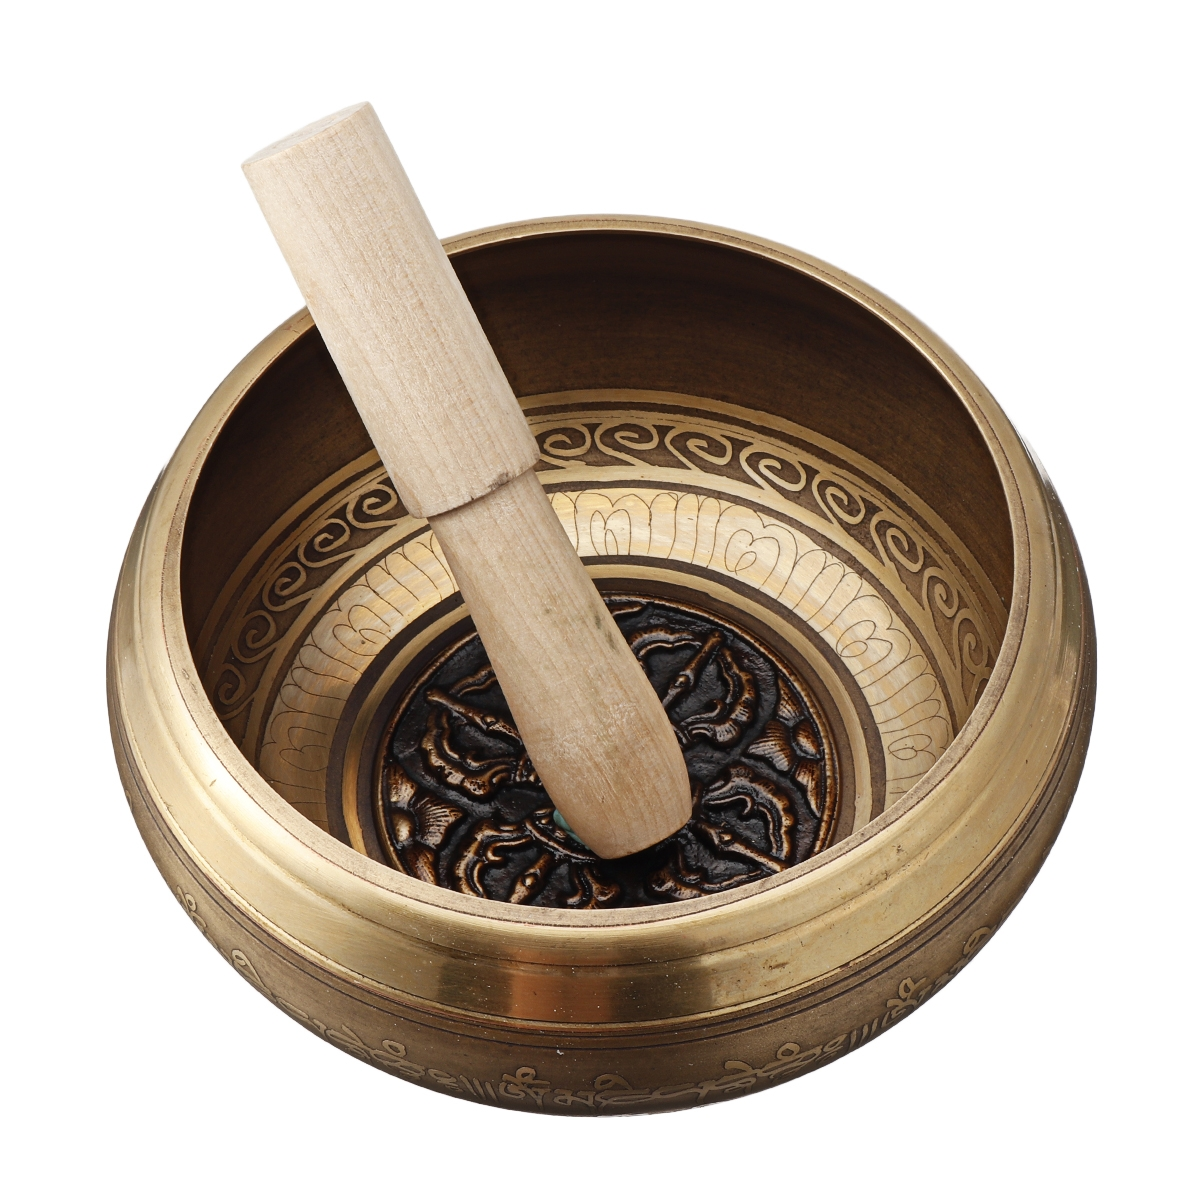 Tibetan Singing Bowl Set Sound Bowl Meditation Music Bowl for Meditation Yoga